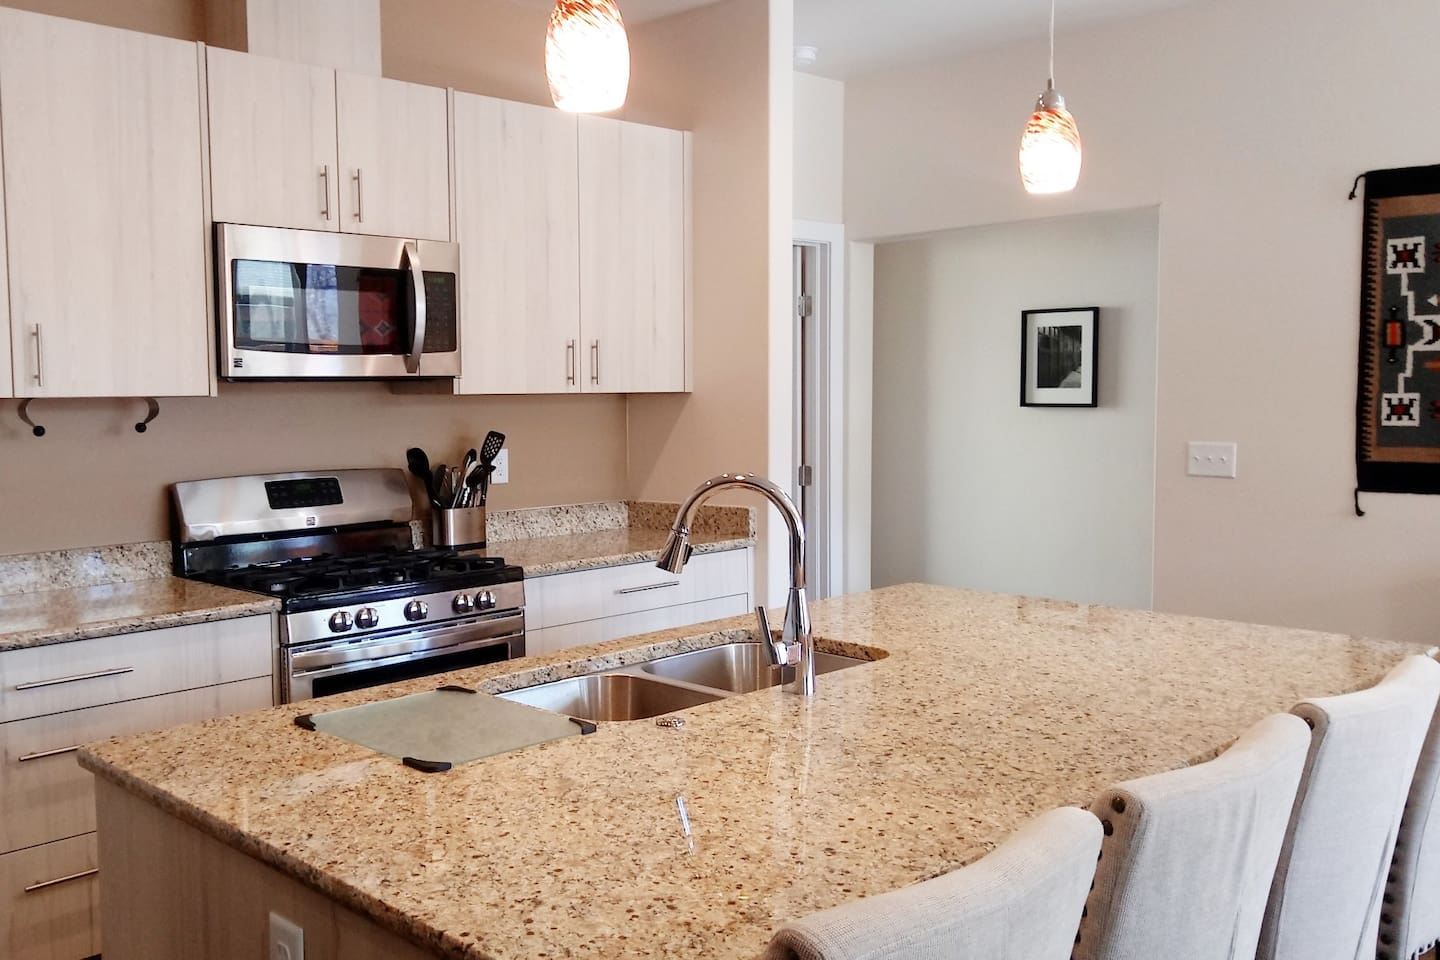 Spacious well appointed kitchen with with new upscale appliances / gas stove. Ice maker, coffee maker, many spices, and assortment of kitchen utensils etc.